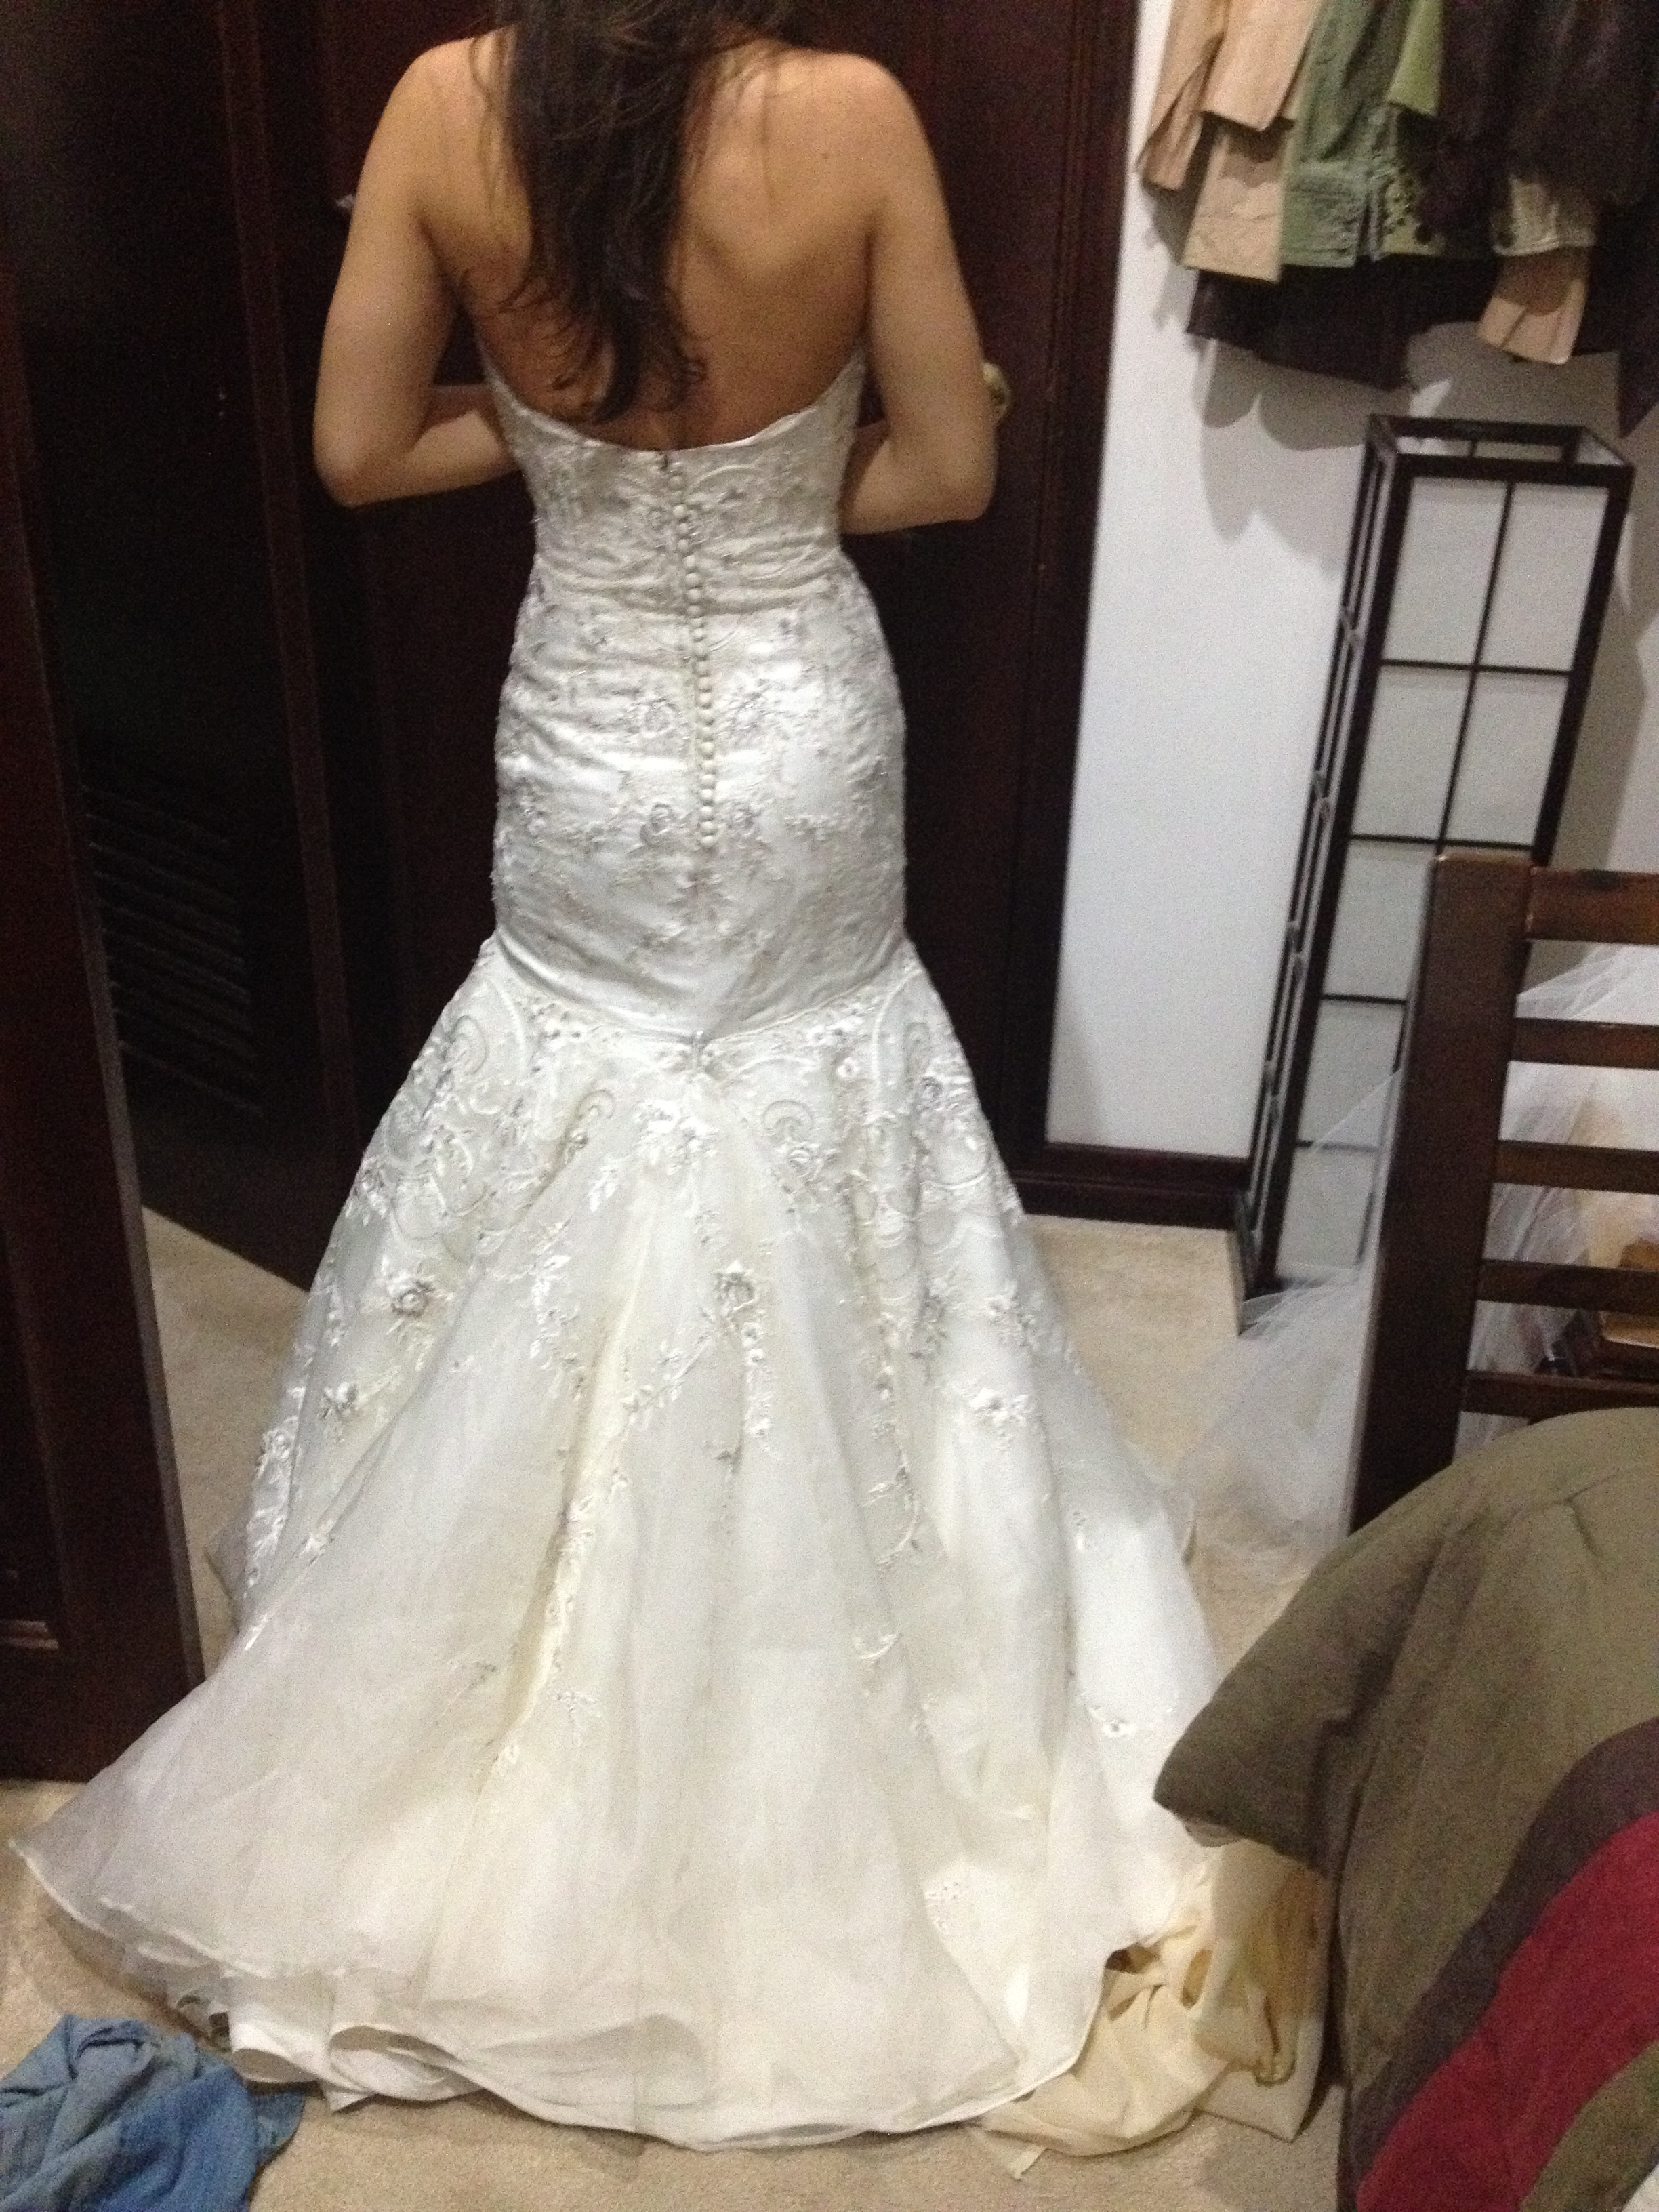 How to bustle my dress weddingbee for Wedding dress train bustle